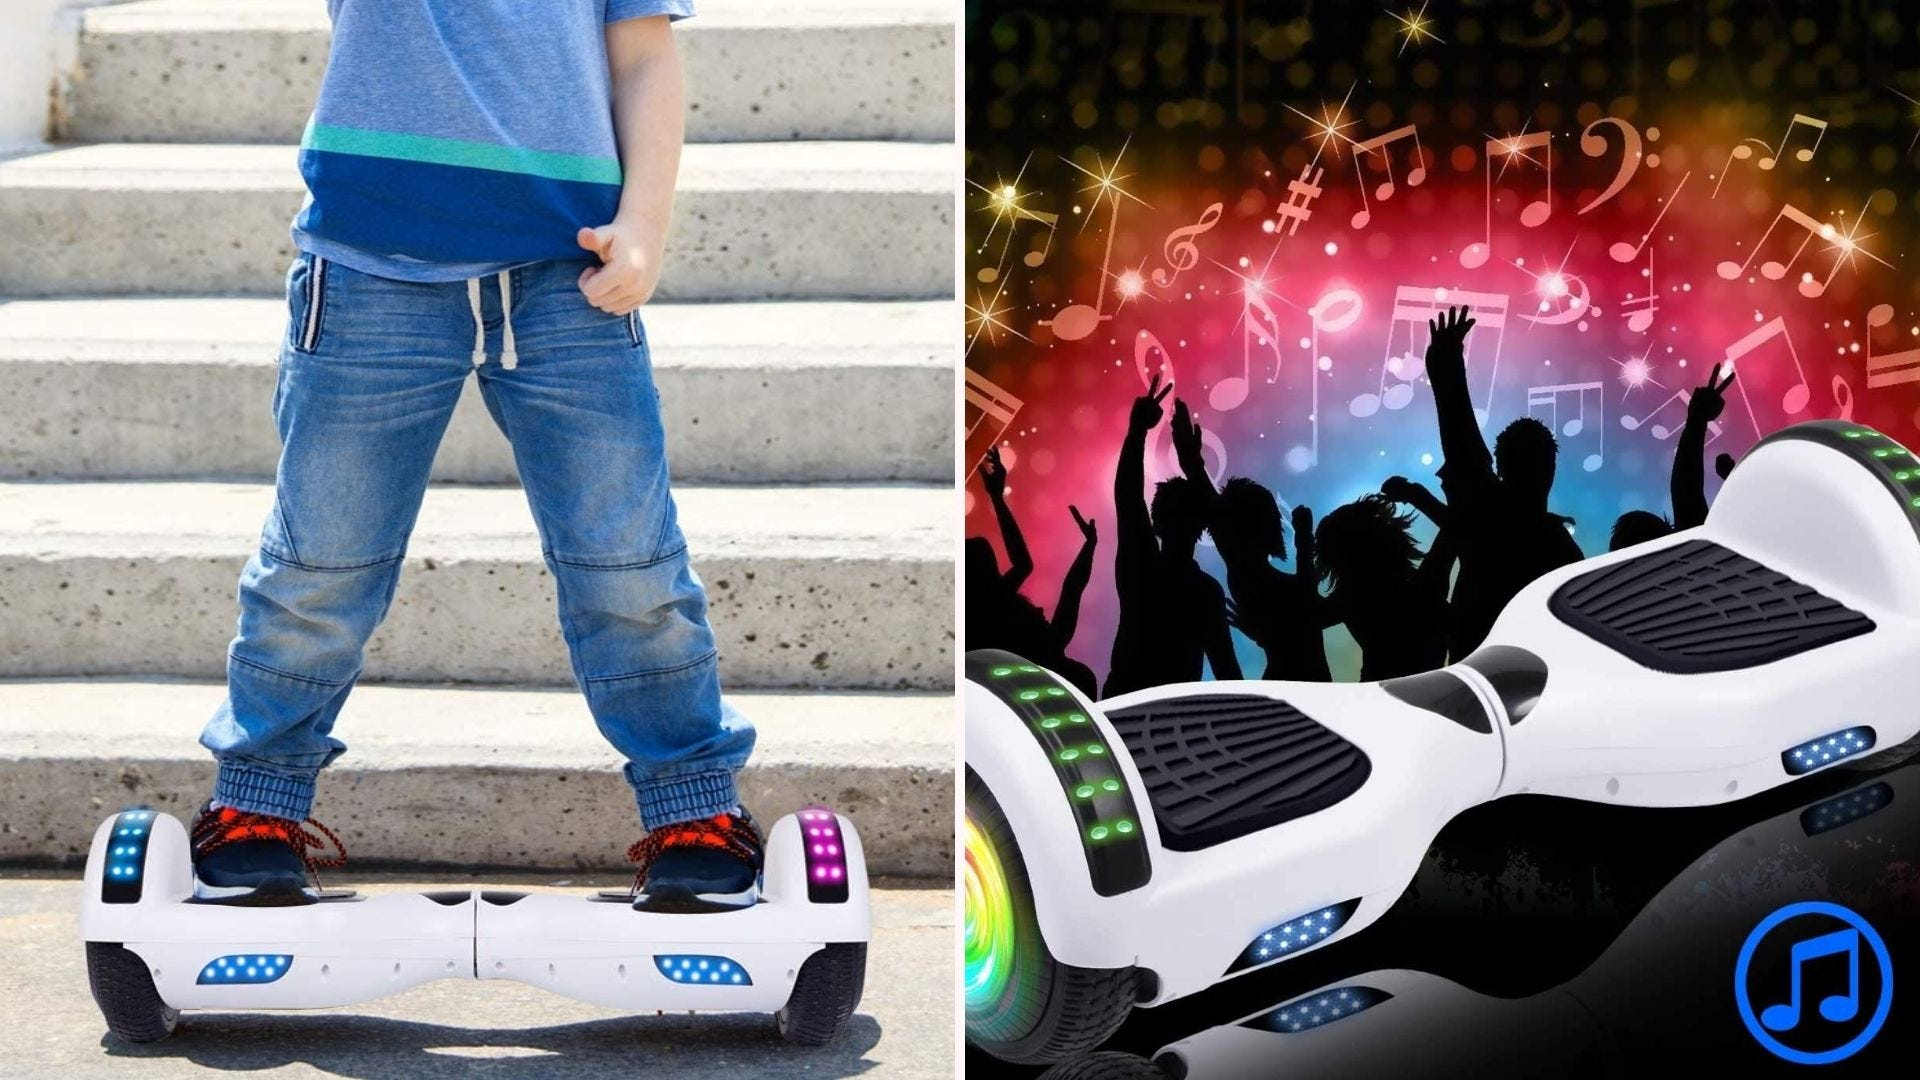 on the left is a boy on a white hoverboard; on the right is the hoverboard displayed with dancing silhouettes in the background